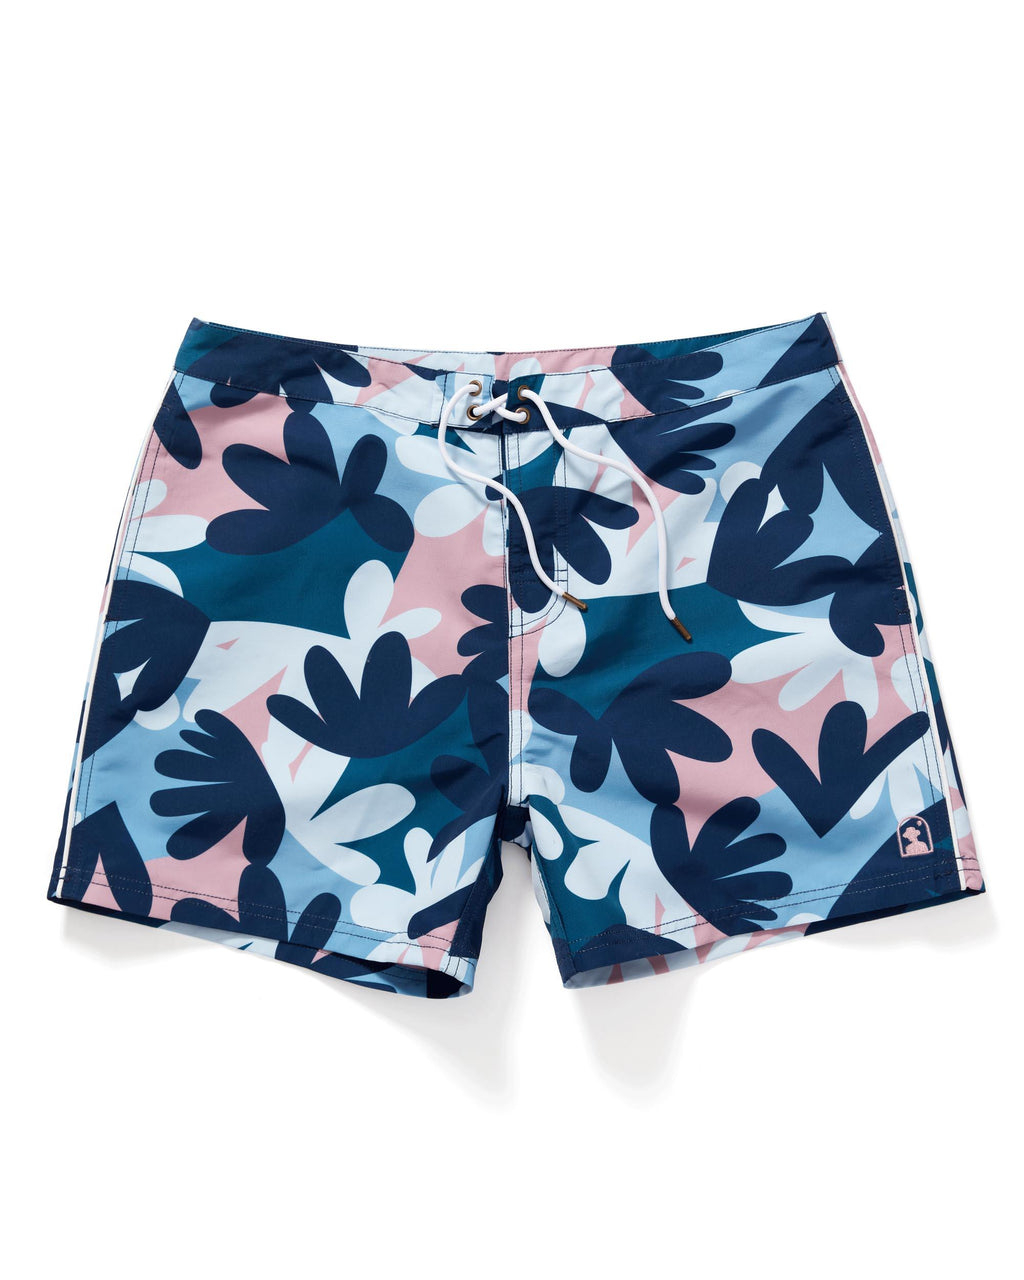 Riviera Trunks - The Riviera Trunks - Blue Lagoon